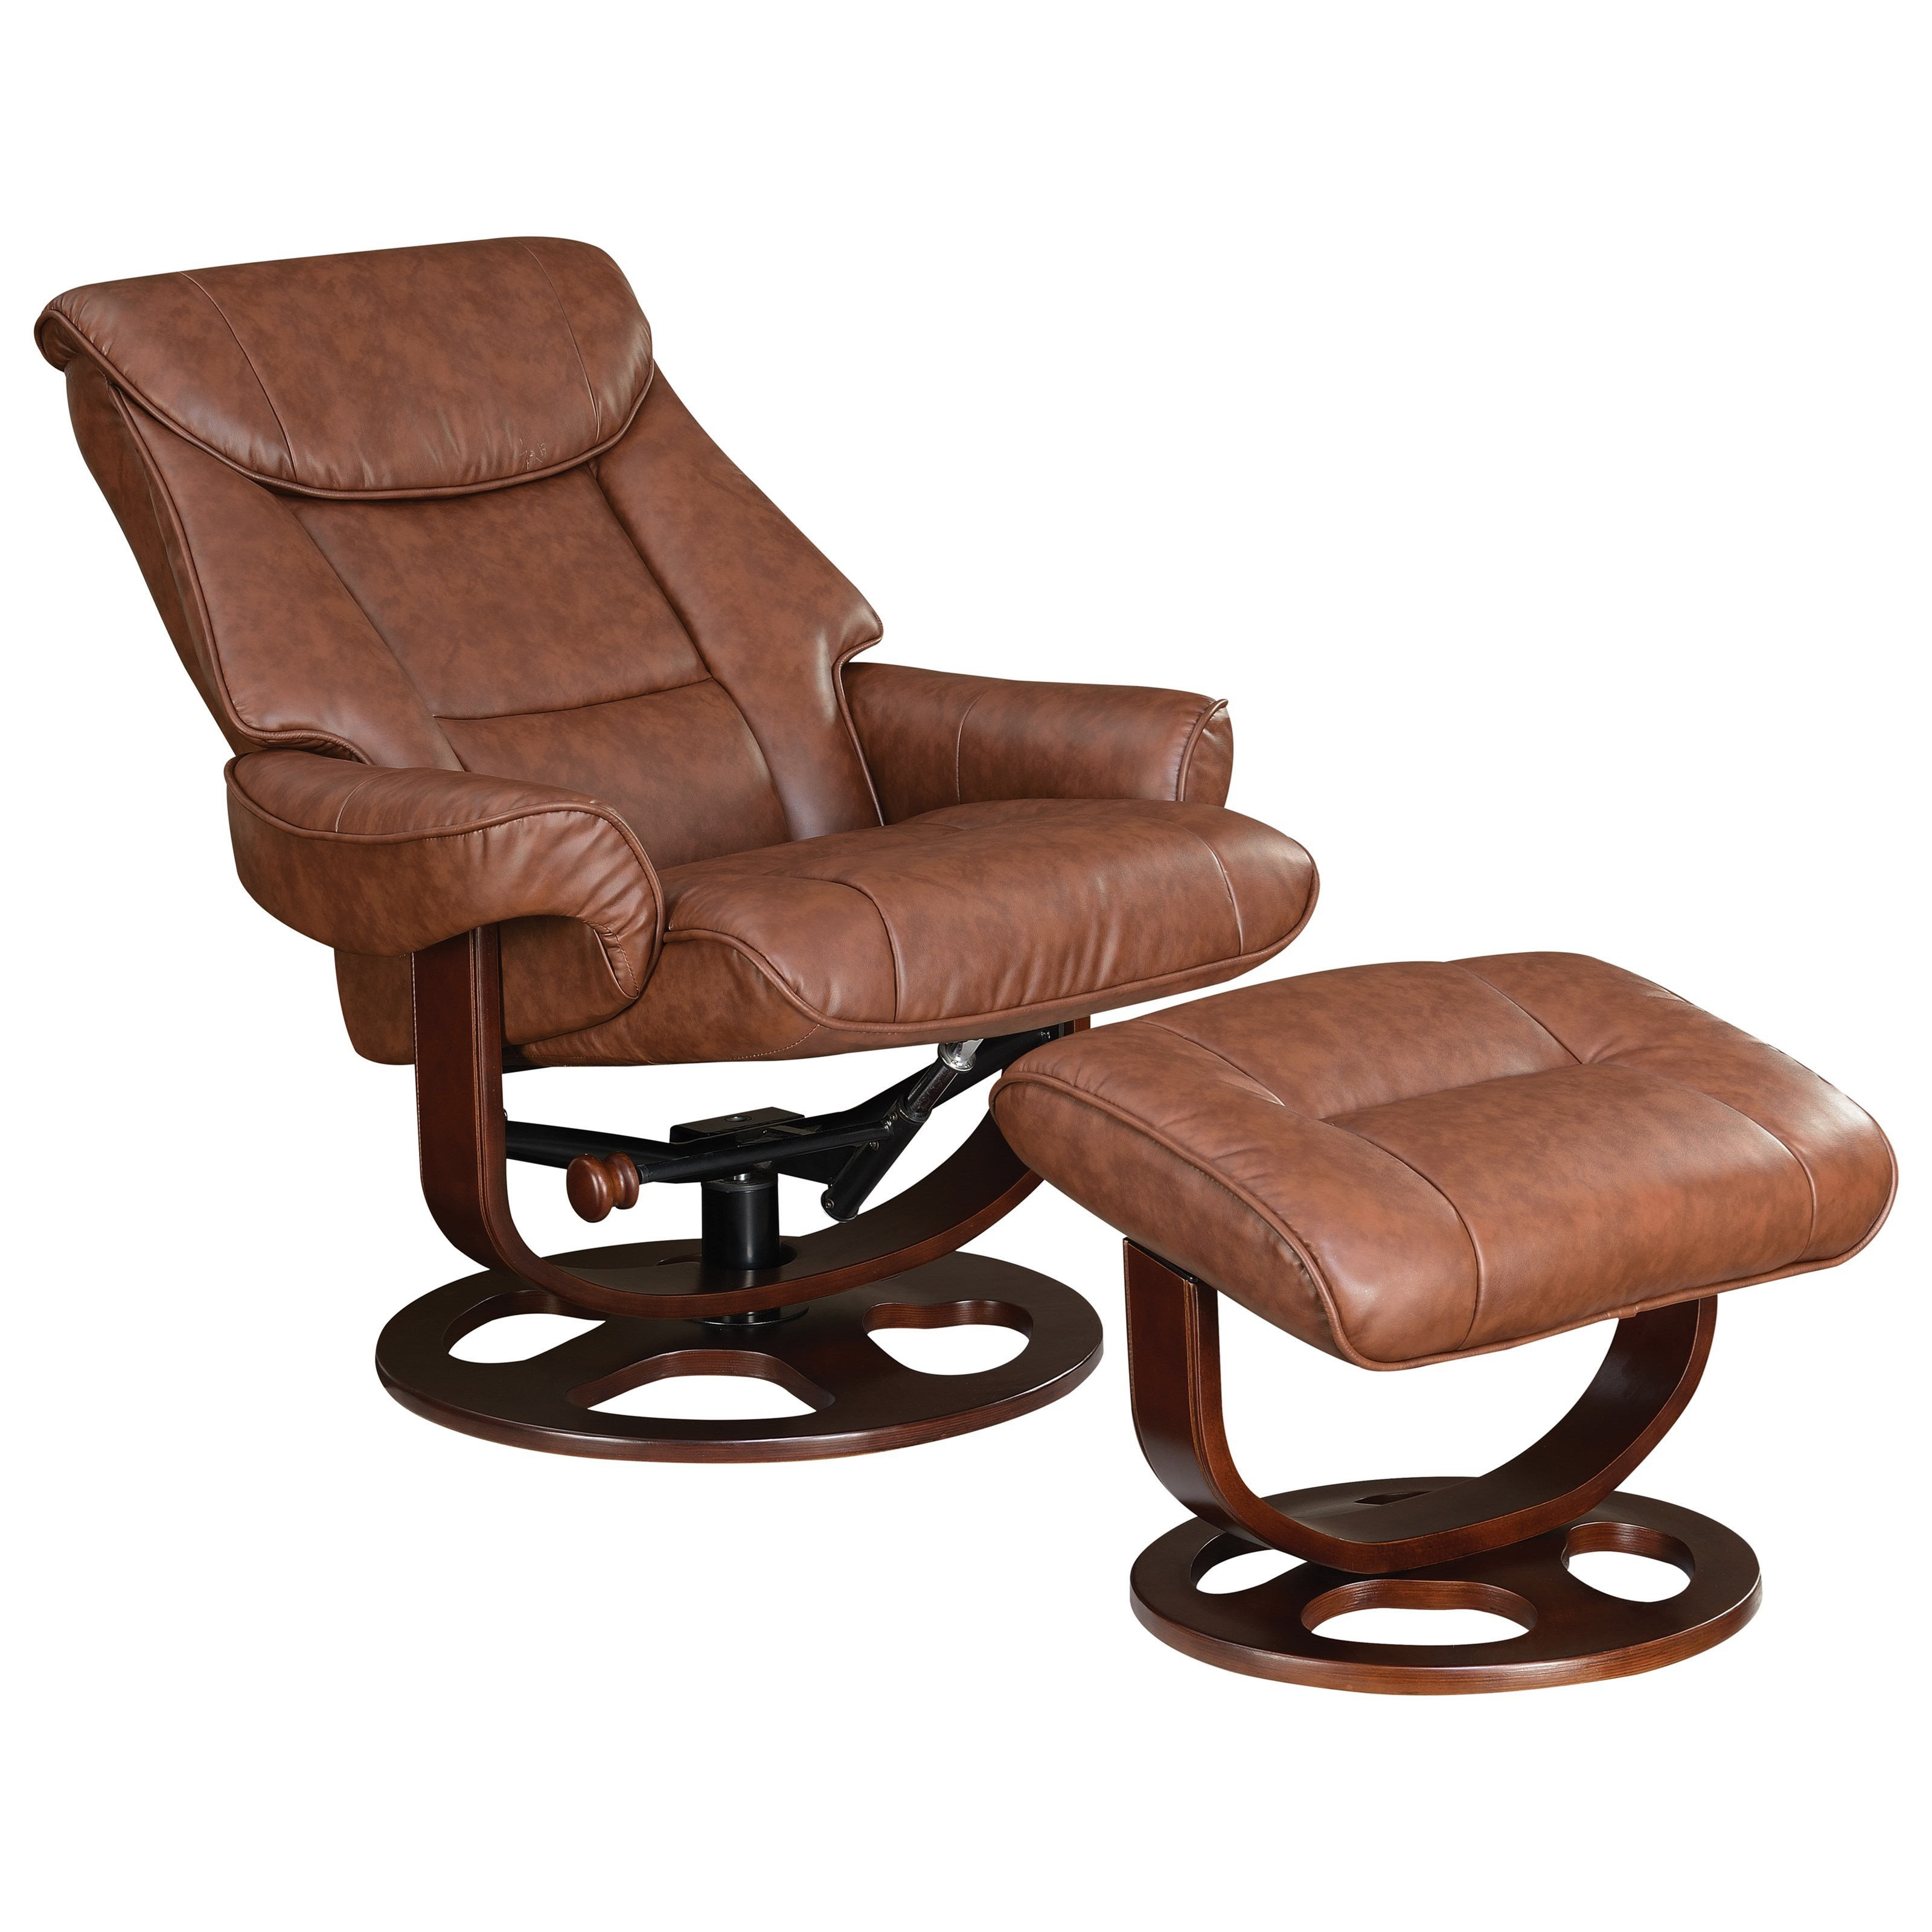 Stressless Recliners With Ottoman Coaster Recliners With Ottomans 600087 Ergonomic Chair And